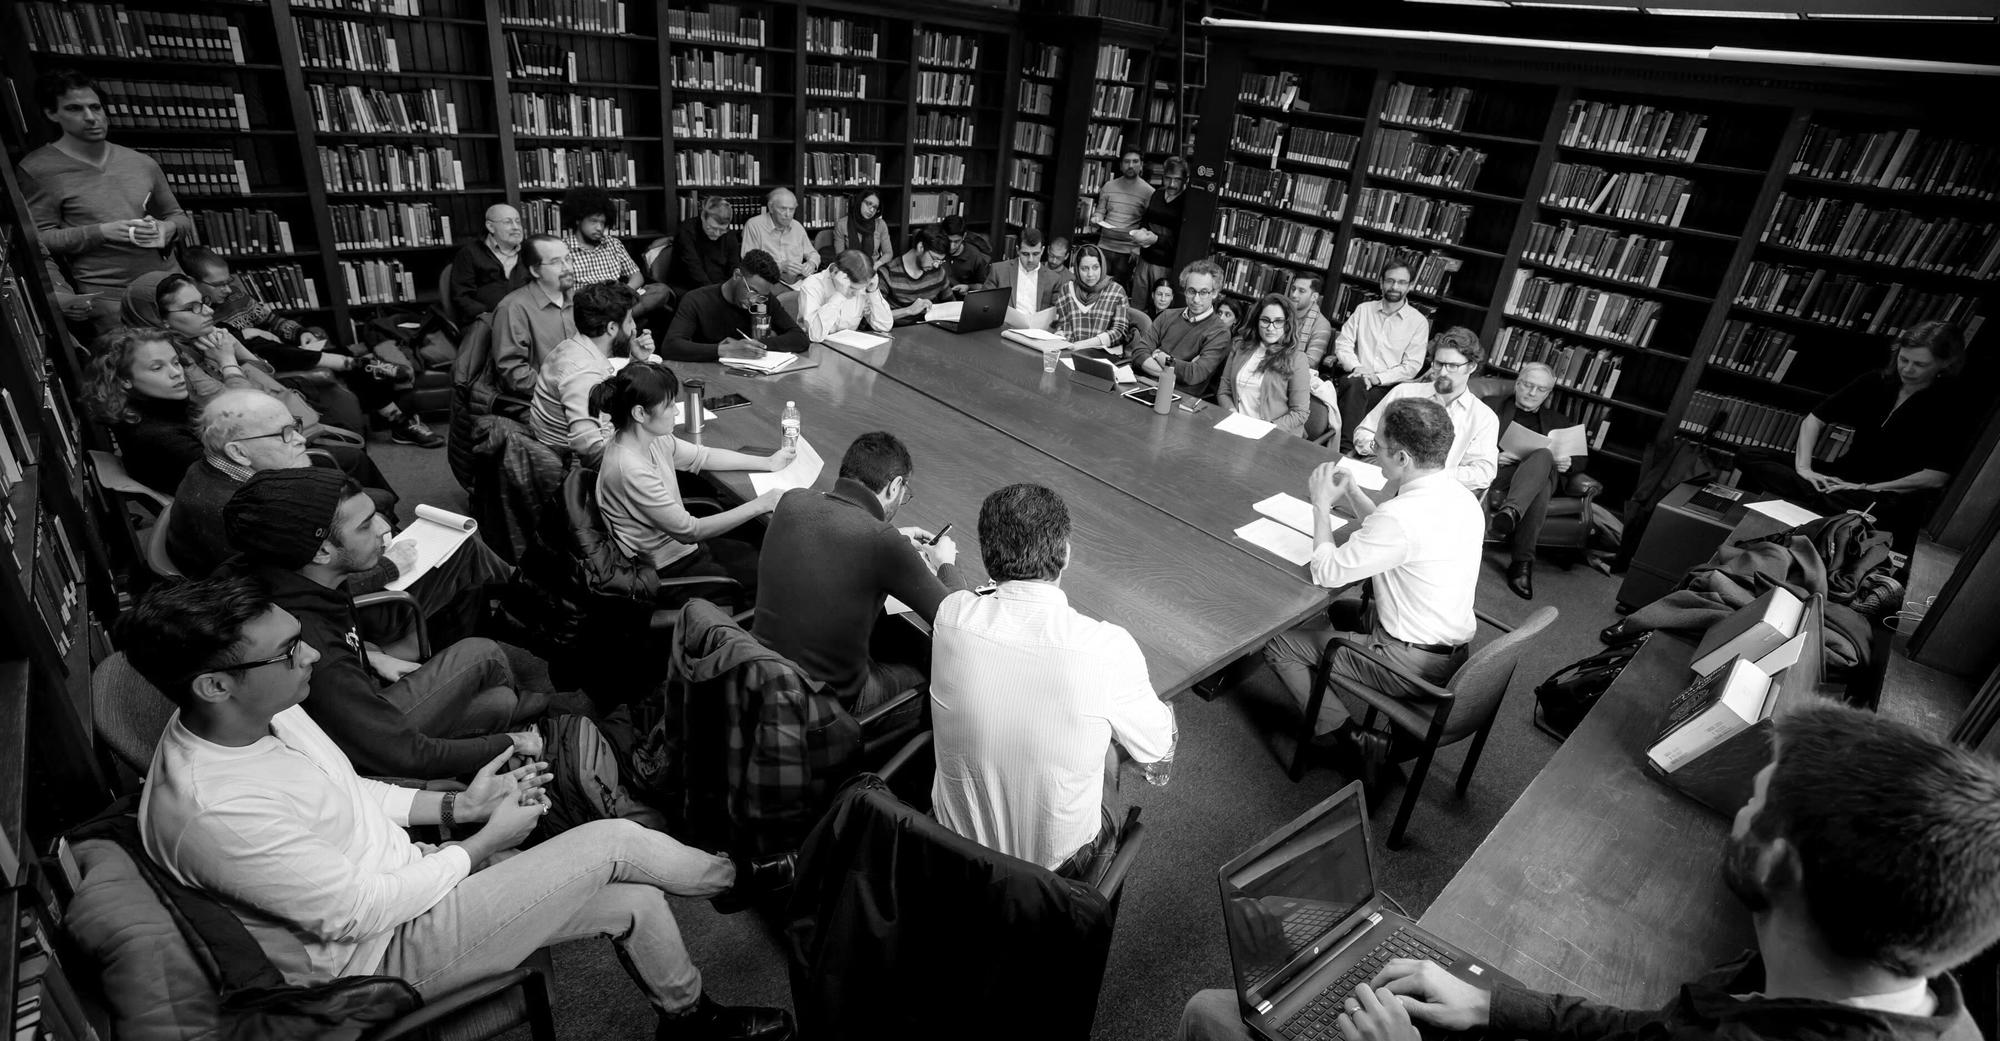 history of philosophy workshop in black and white